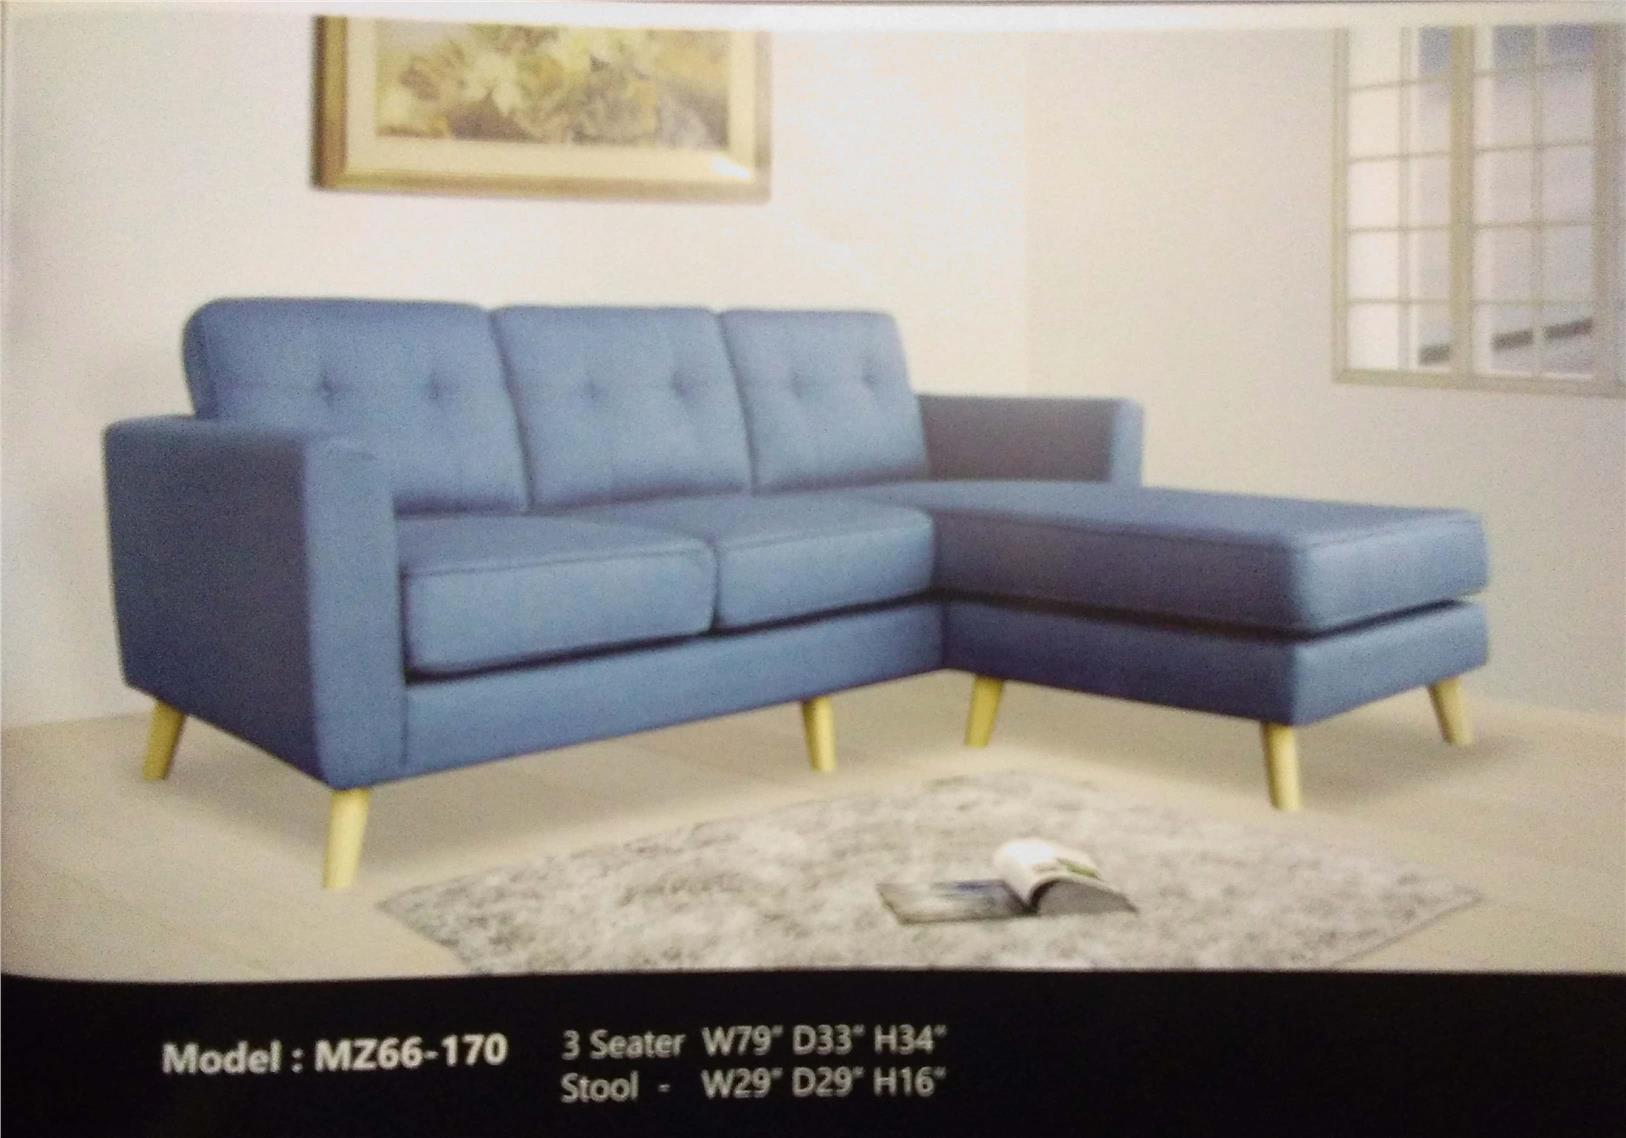 SOFA L SHAPE INSTALLMENT PLAN PAYMENT MODEL MZ66-170